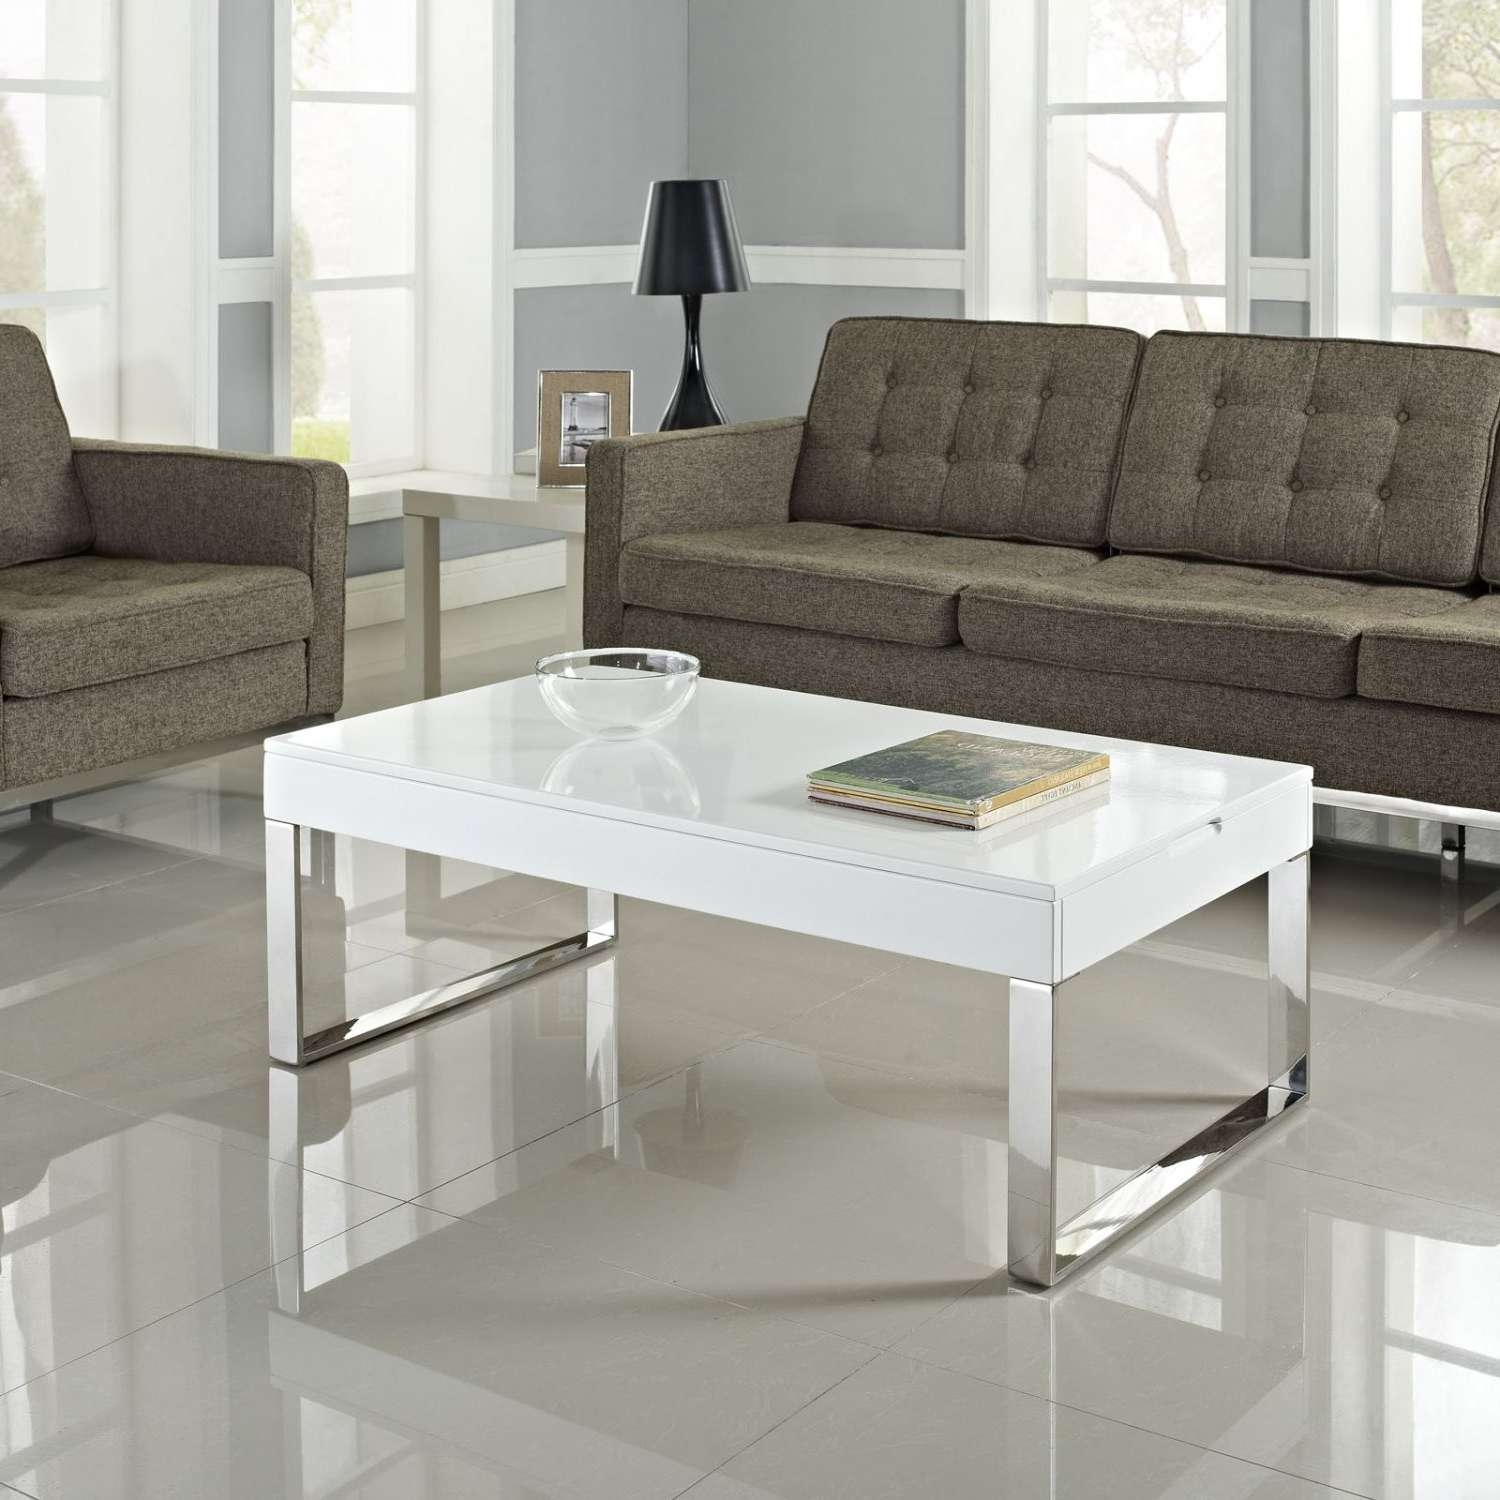 White Gloss Lift Coffee Table – All Furniture Usa Within Trendy White High Gloss Coffee Tables (View 8 of 20)